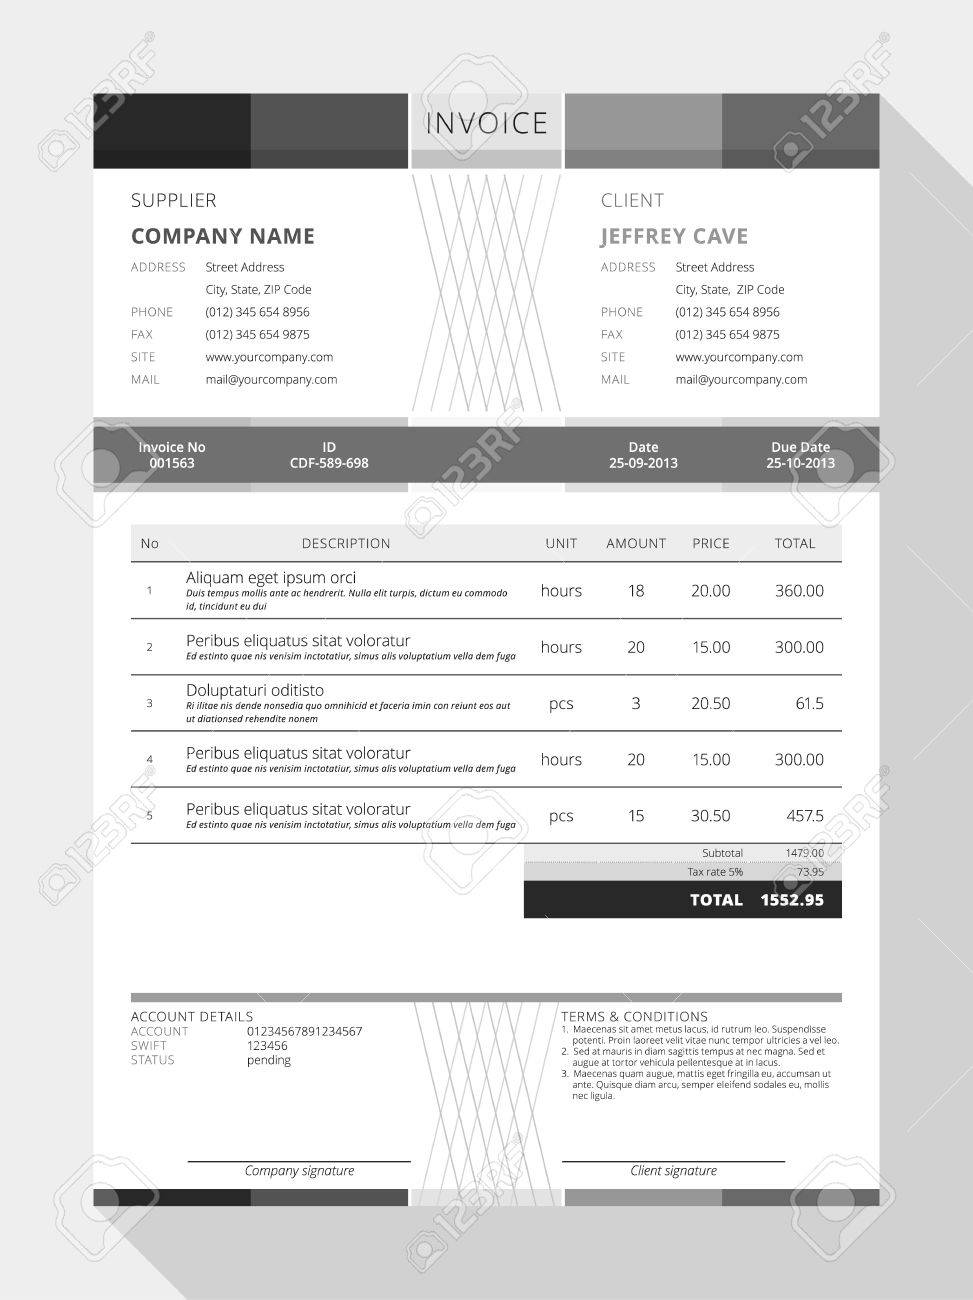 Darkfaderus  Gorgeous Design An Invoice  Professional Graphic Design Invoice  With Magnificent Vector Customizable Invoice Form Template Design Vector   Design An Invoice With Appealing Asda Price Match Receipt Also House Rent Receipts Format In Addition How To Fill A Rent Receipt And Receipt Printer Font As Well As Internal Controls Cash Receipts Additionally Lemon Receipt From Happytomco With Darkfaderus  Magnificent Design An Invoice  Professional Graphic Design Invoice  With Appealing Vector Customizable Invoice Form Template Design Vector   Design An Invoice And Gorgeous Asda Price Match Receipt Also House Rent Receipts Format In Addition How To Fill A Rent Receipt From Happytomco